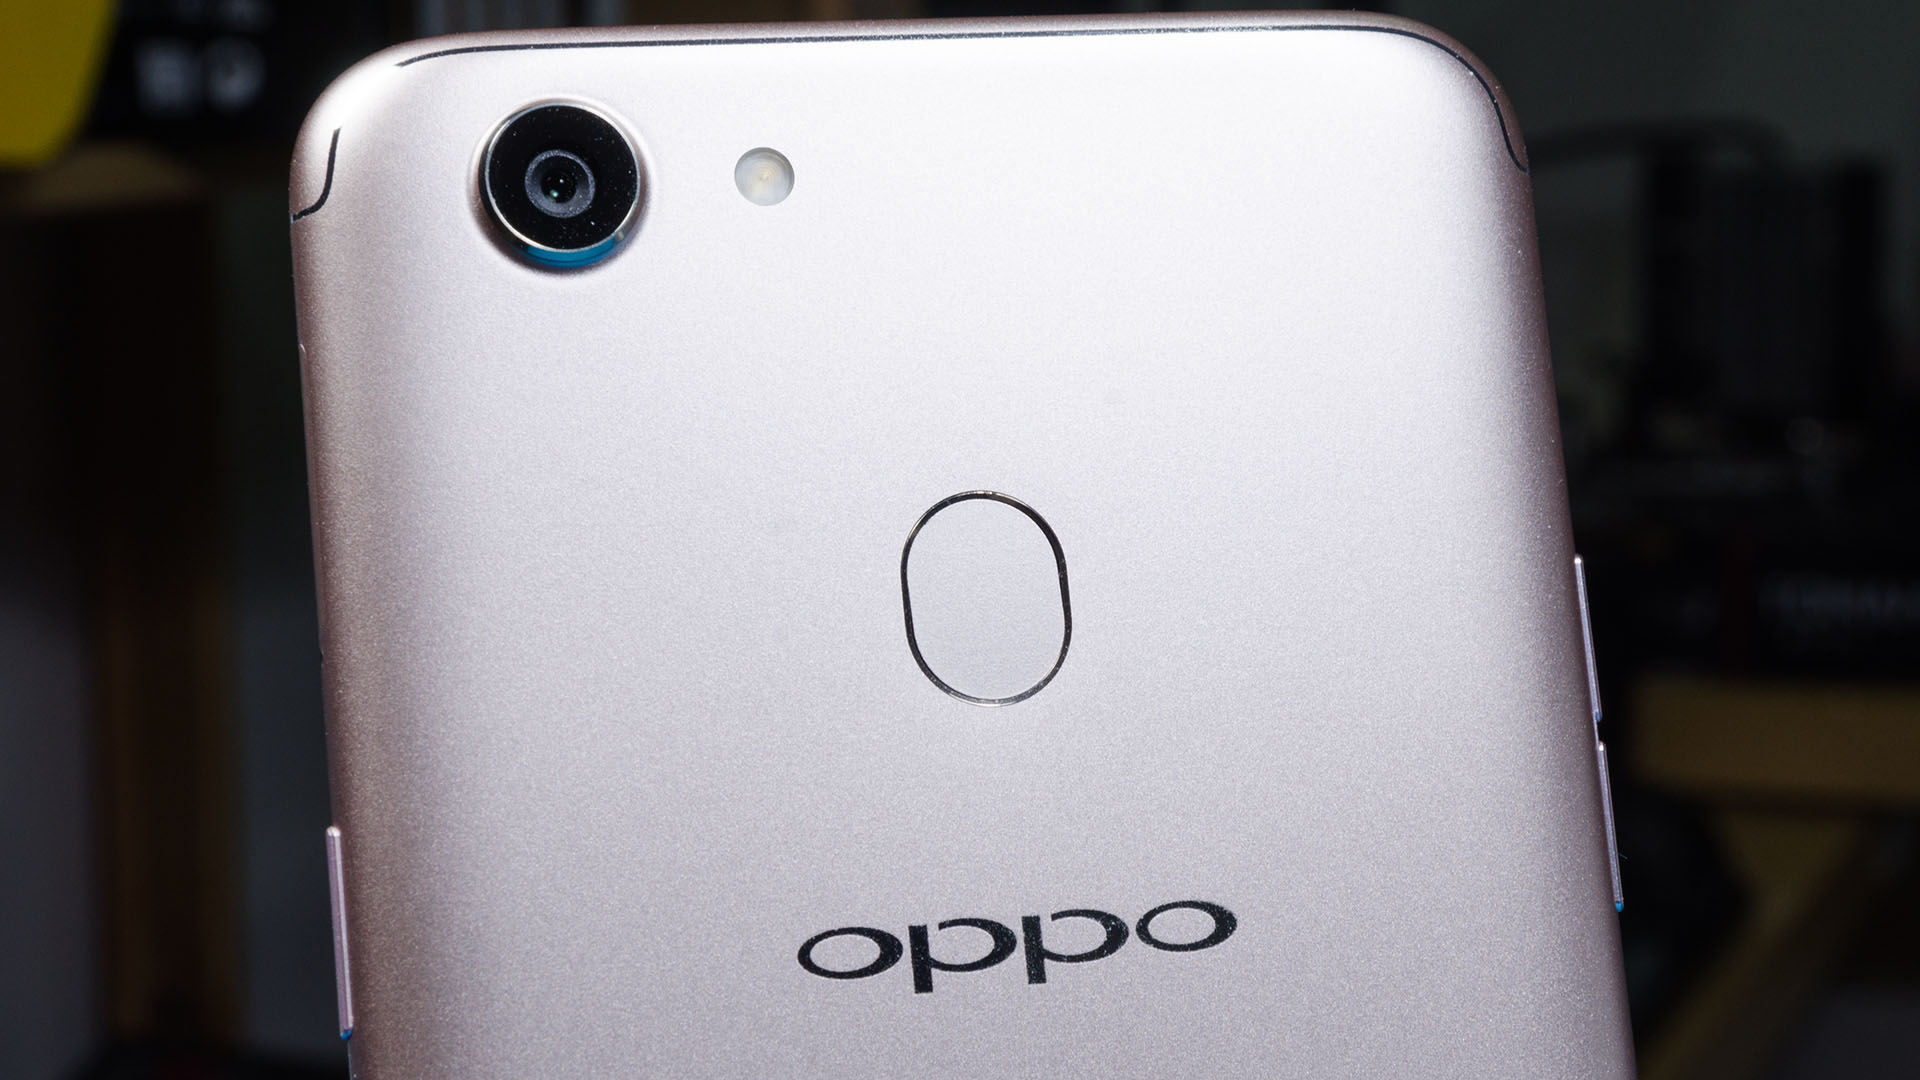 Review oppo f5 upgrade from the f1s nasi lemak tech review oppo f5 upgrade from the f1s stopboris Gallery